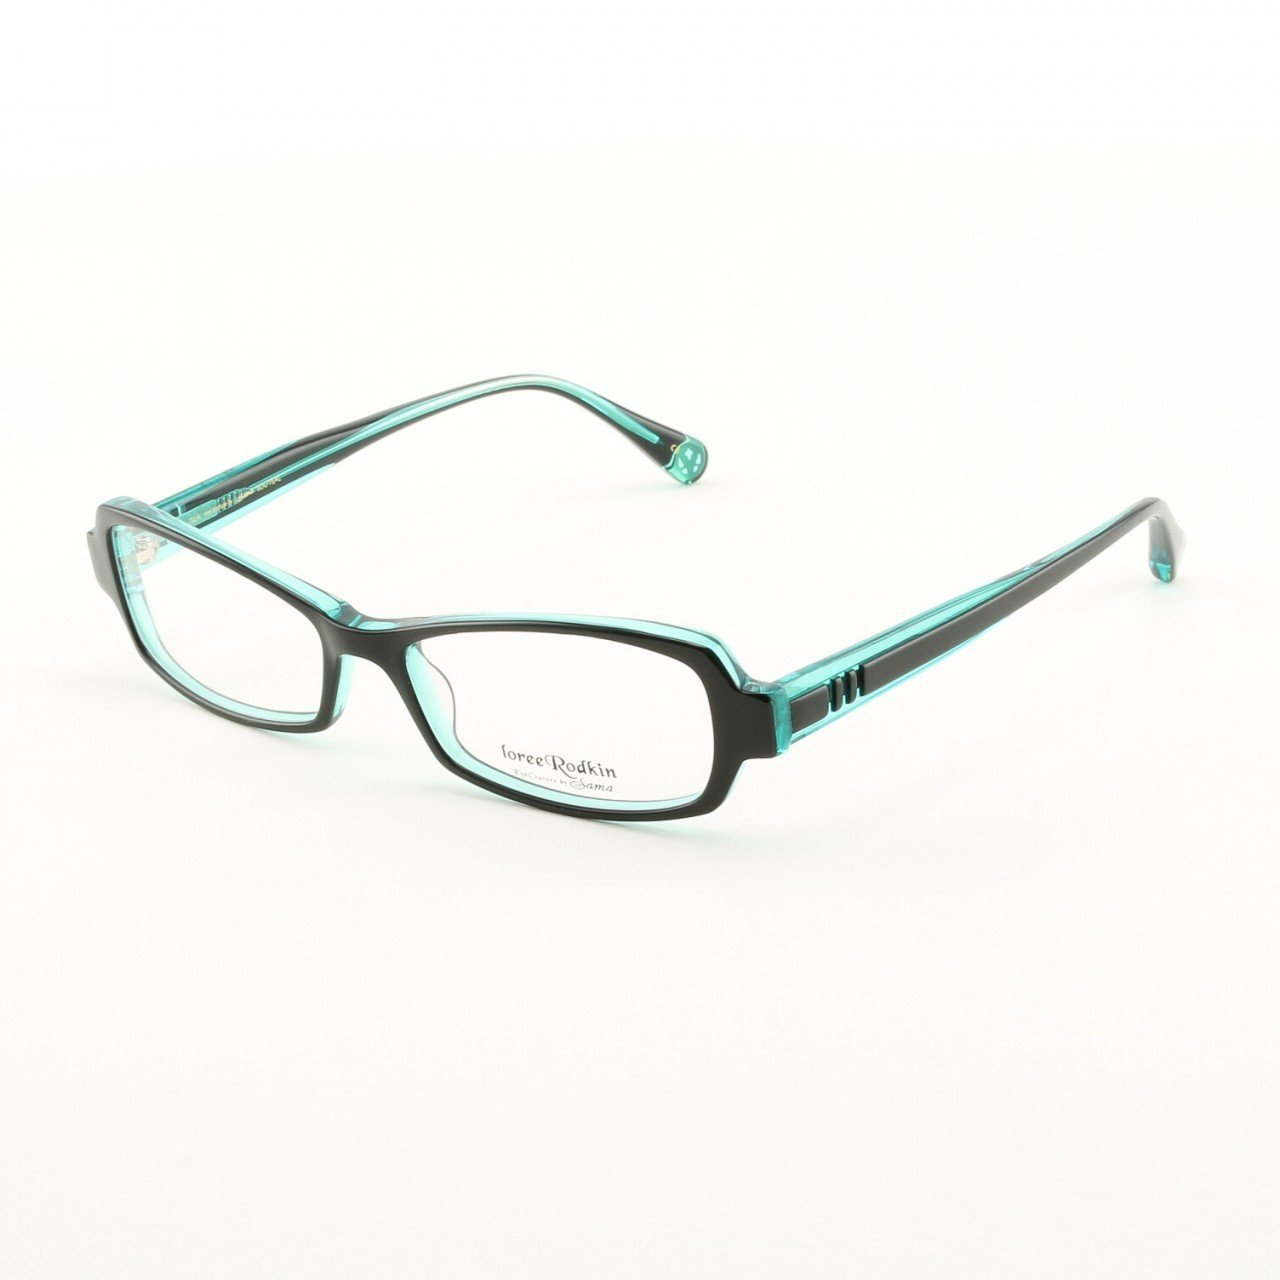 Loree Rodkin Isla Eyeglasses by Sama Col. Black and Teal with Clear Lenses